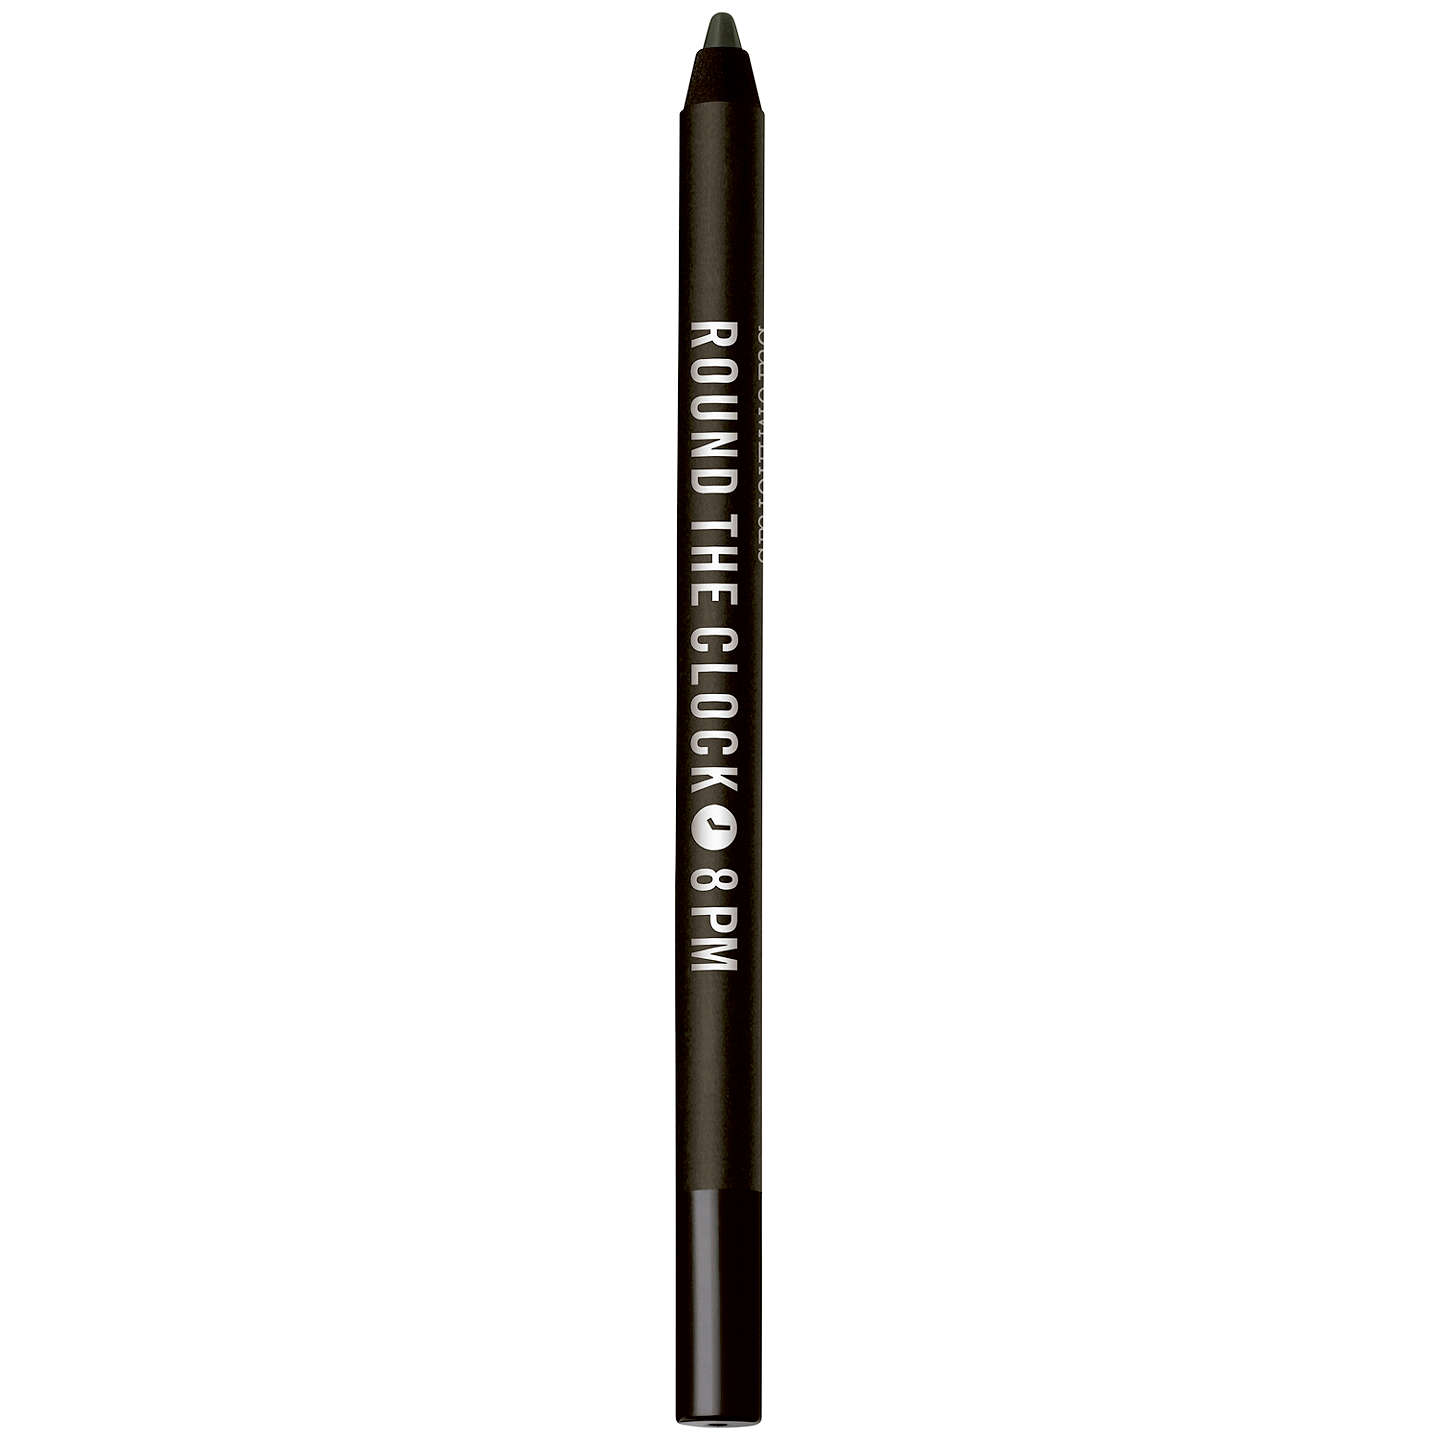 Bareminerals round the clock eyeliner 8pm at john lewis buybareminerals round the clock eyeliner 8pm online at johnlewis biocorpaavc Images